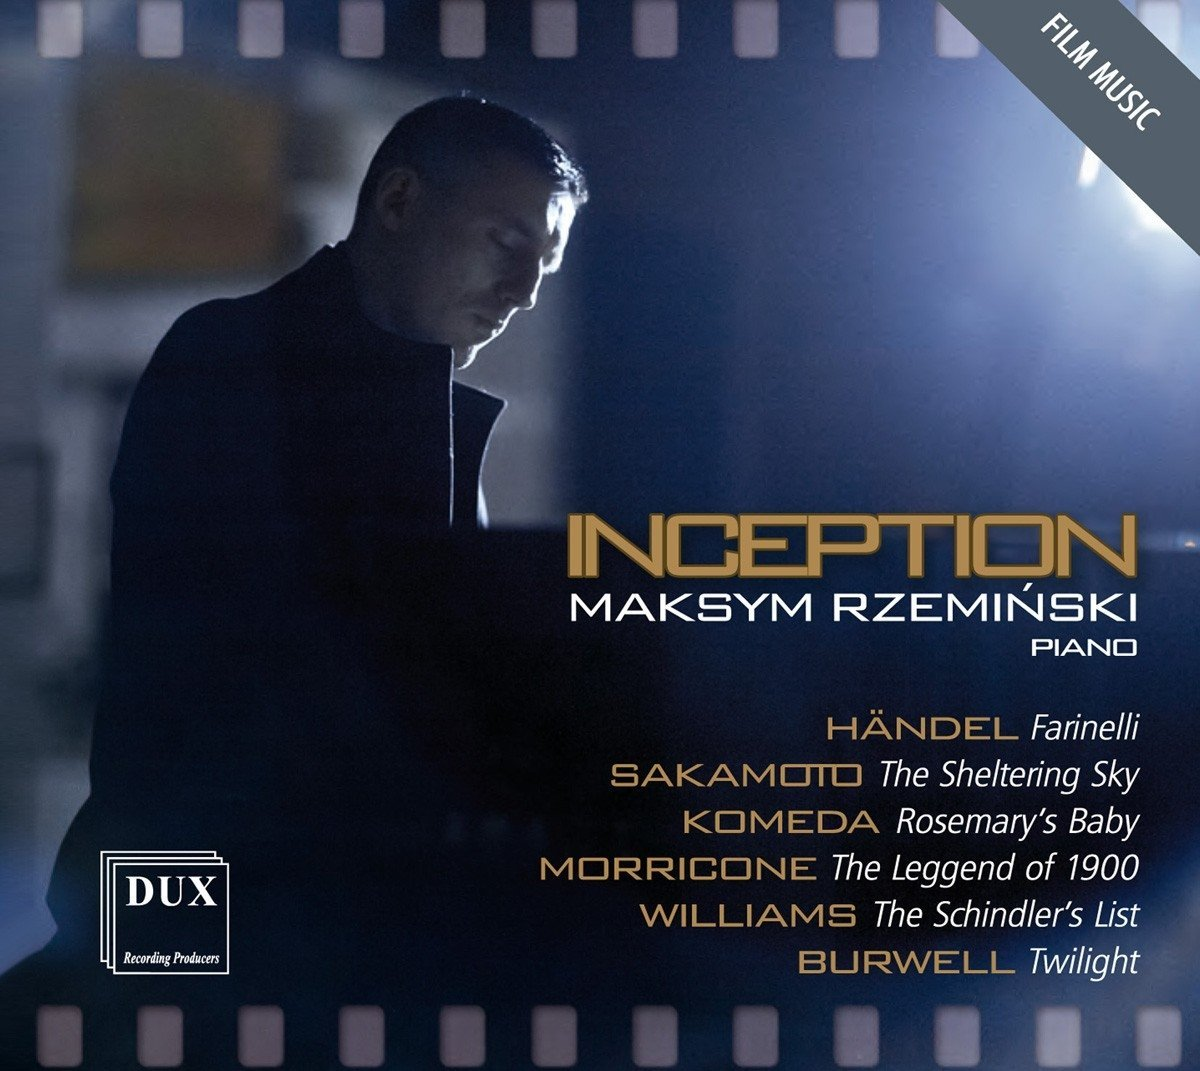 Inception - Maksym Rzeminski